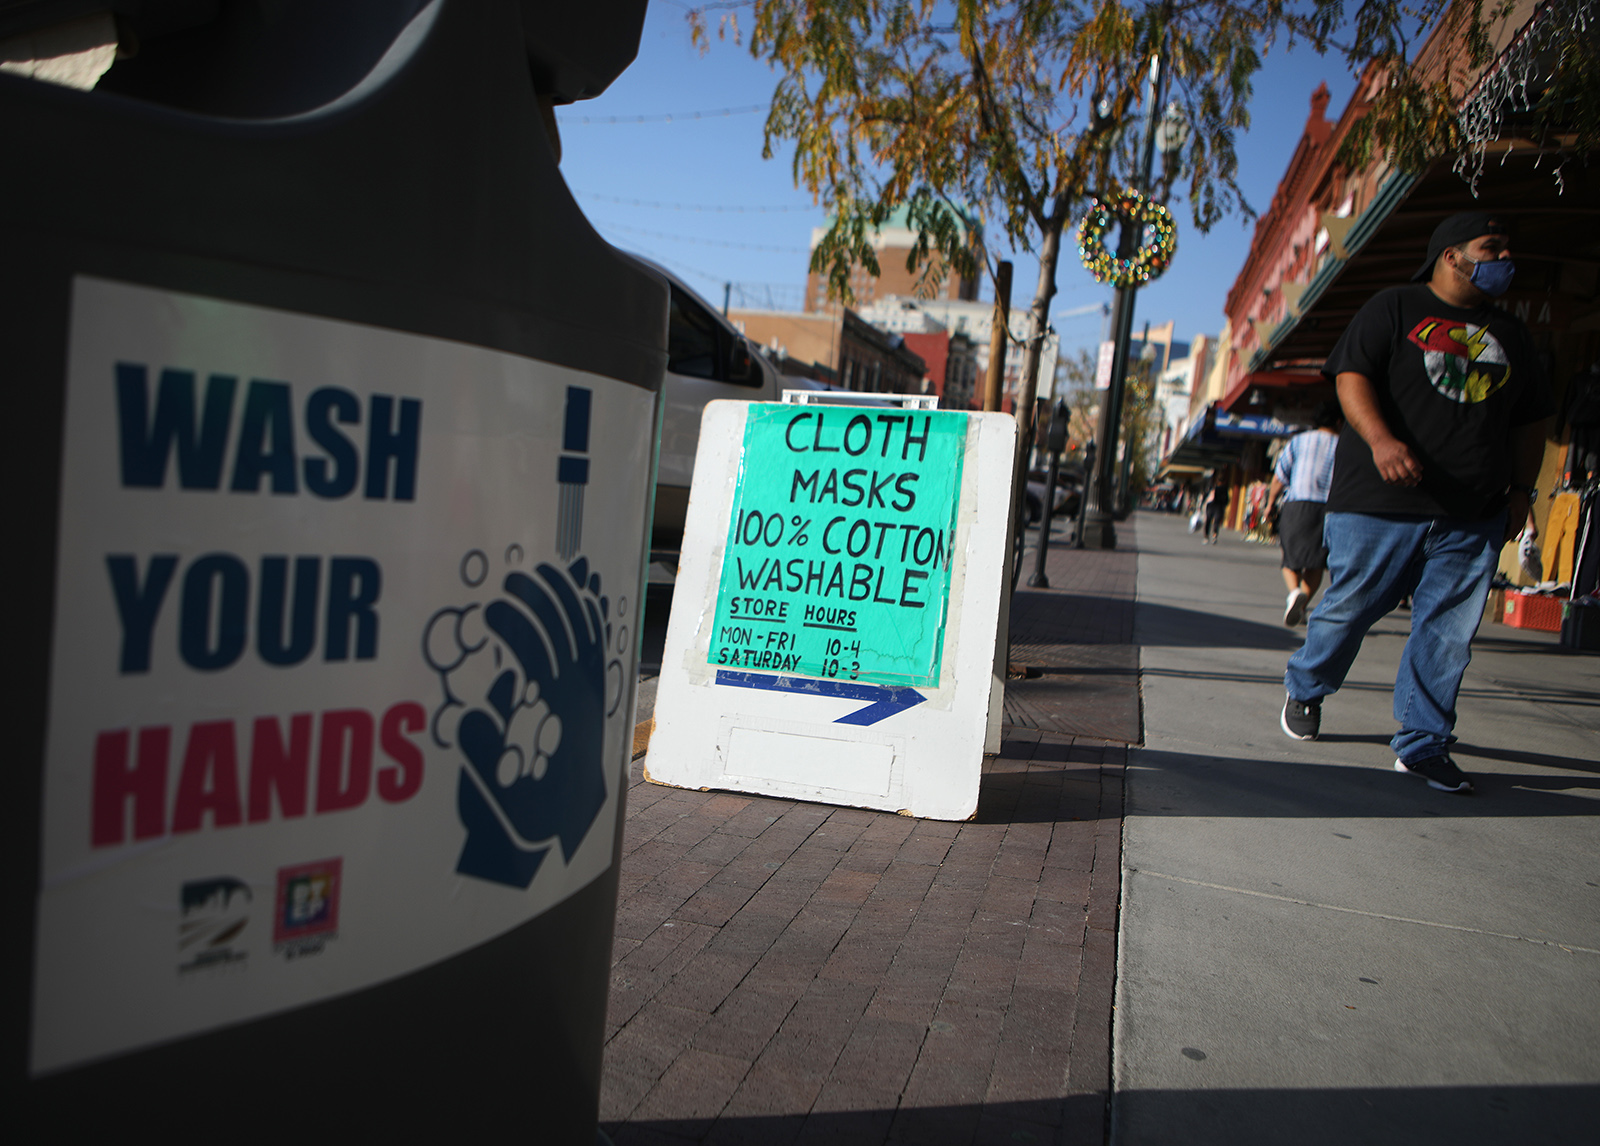 Masks are advertised near a handwashing station amid a surge of coronavirus cases in the city on November 18, in El Paso, Texas.